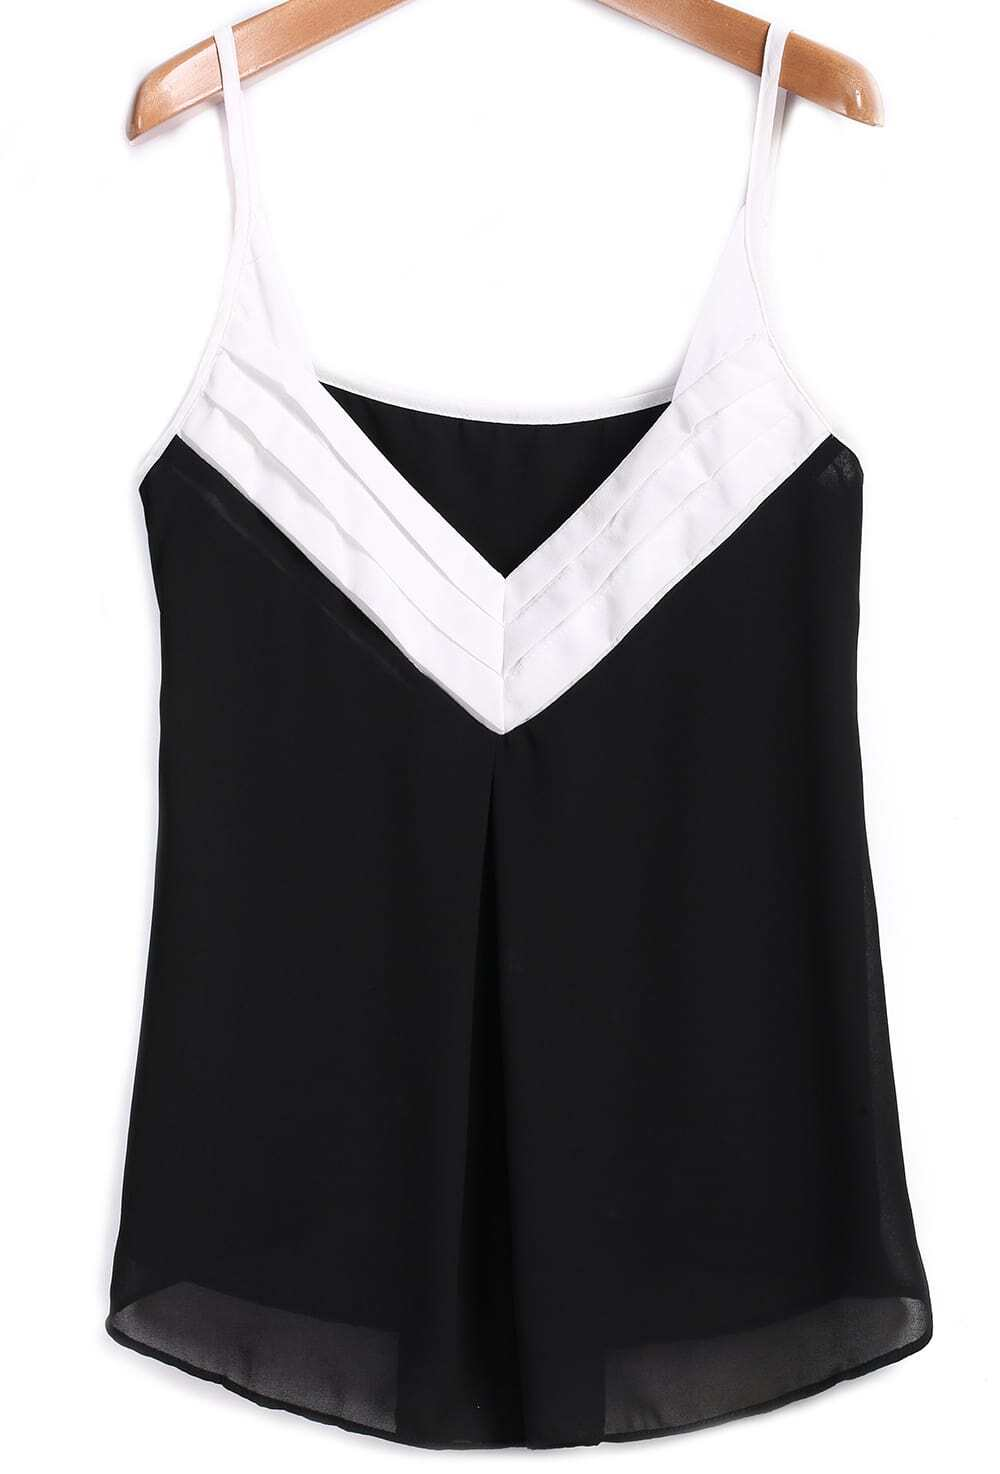 Black Spaghetti Strap Color Block Chiffon Cami Top